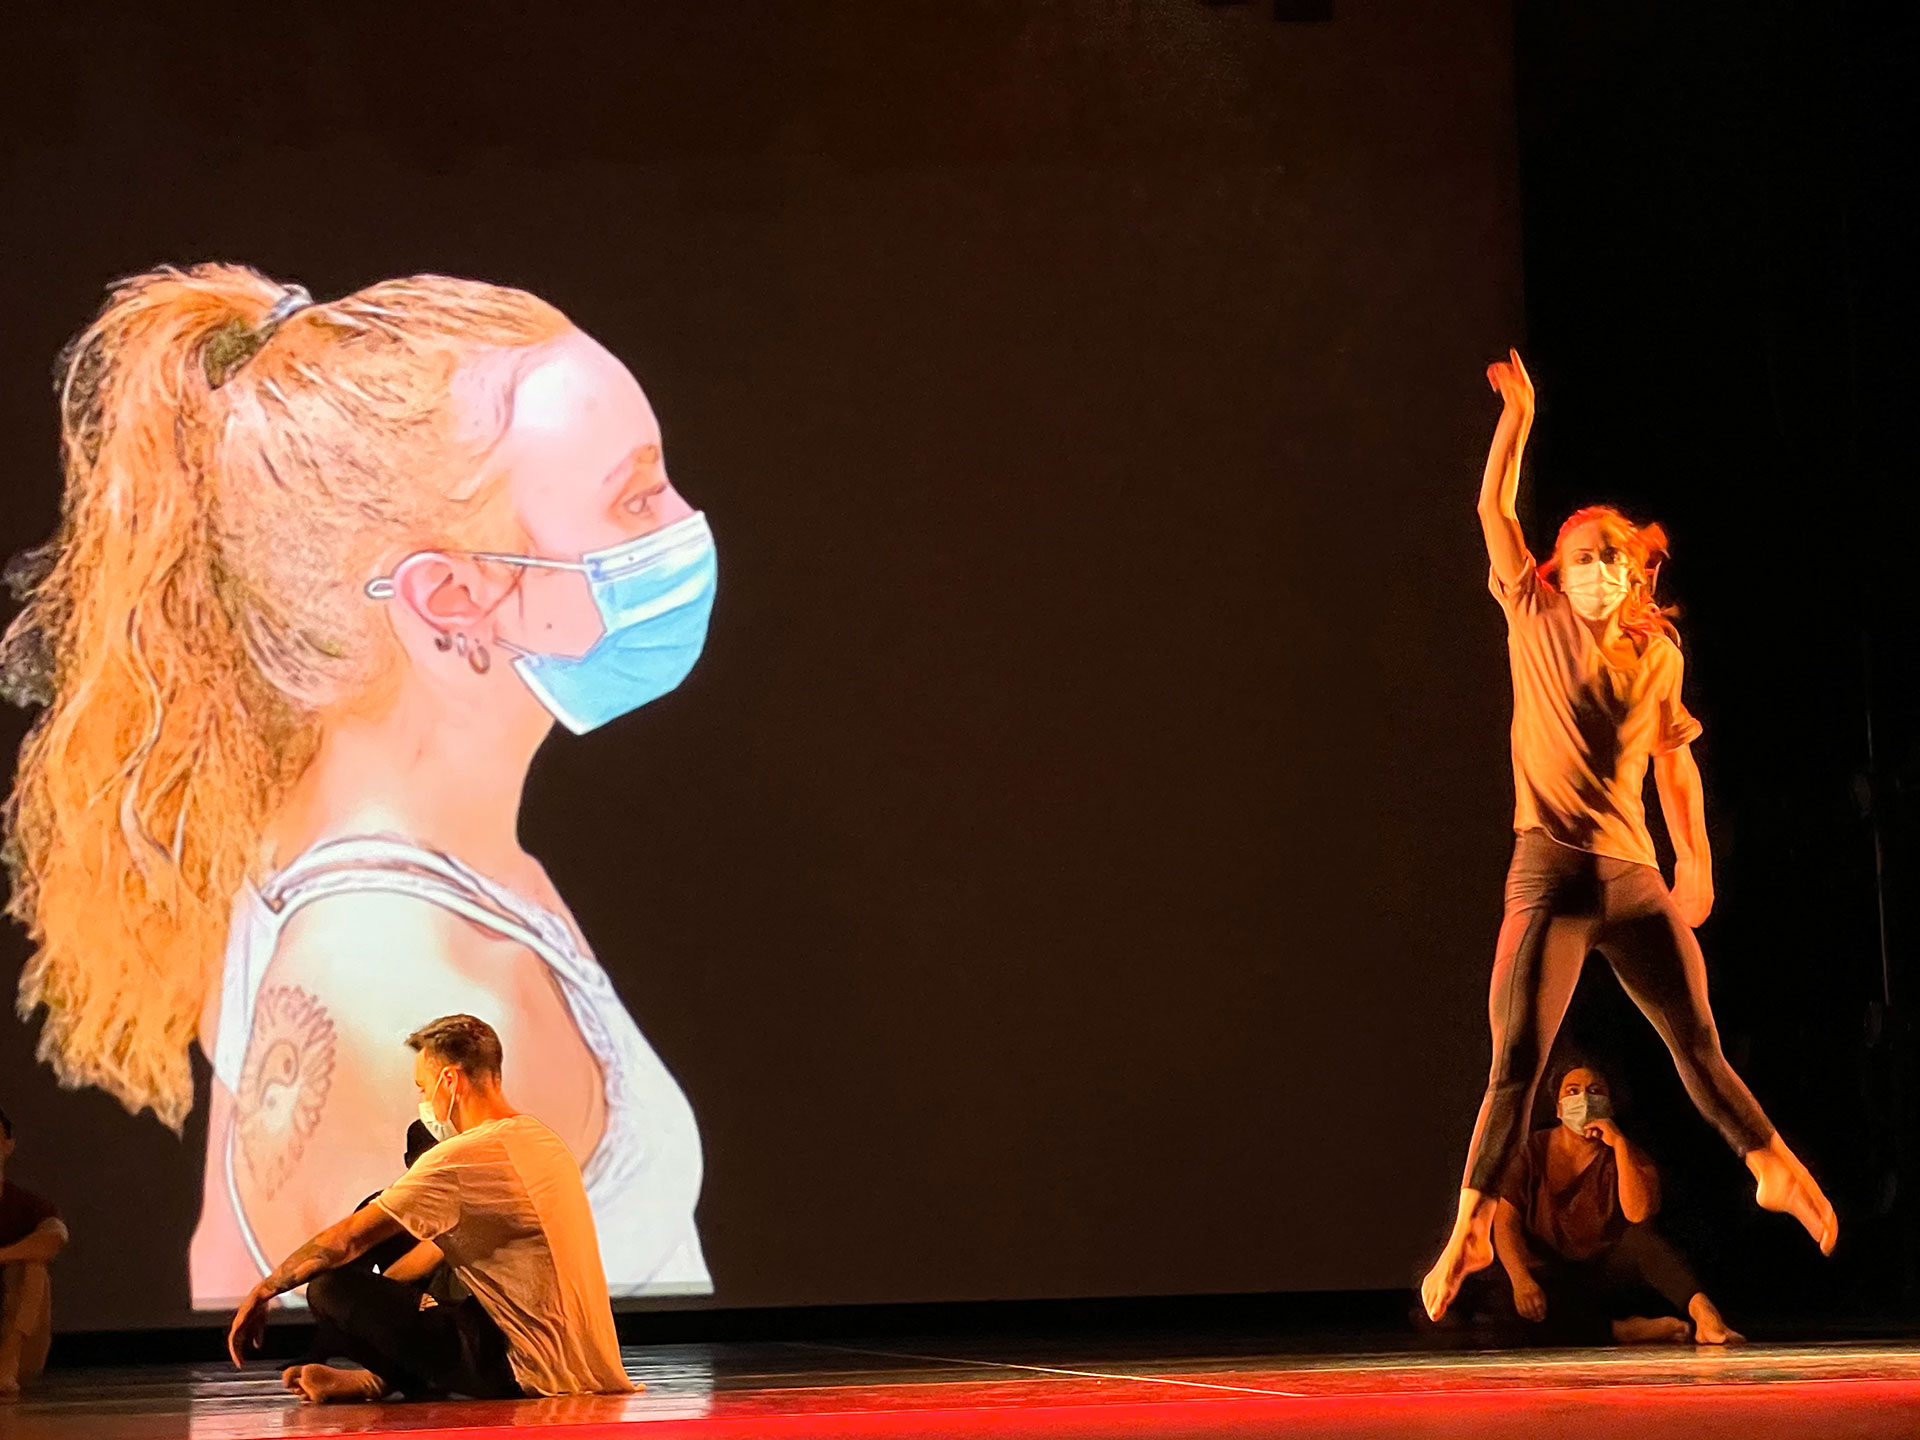 Solo dancer performs while large image of herself projected on the back of the stage looks over her.